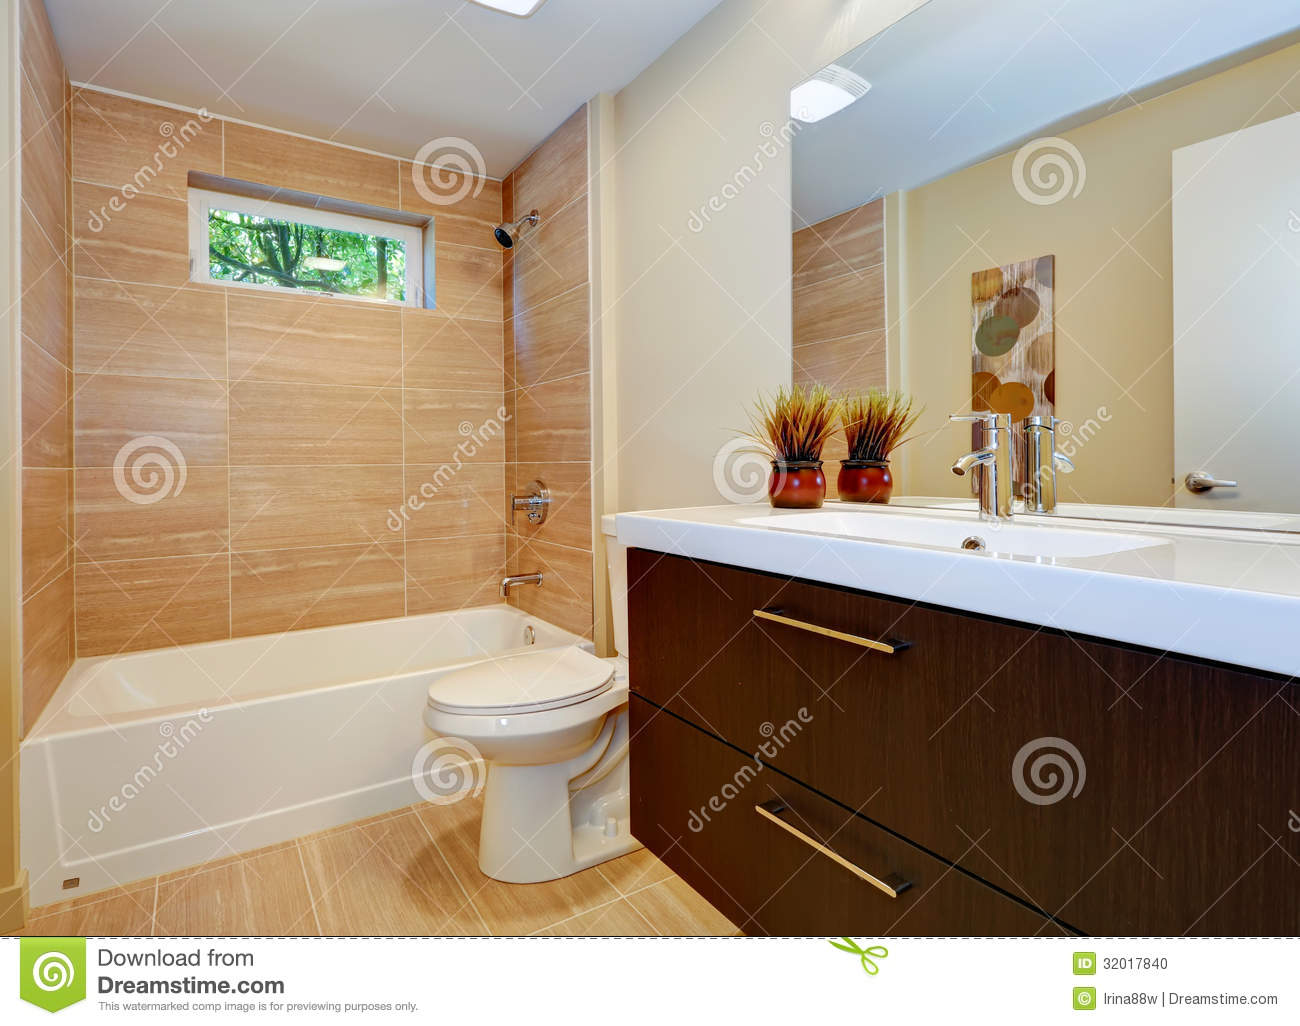 Modern New Bathroom Design With Sink And White Tub Stock Photo Image 32017840